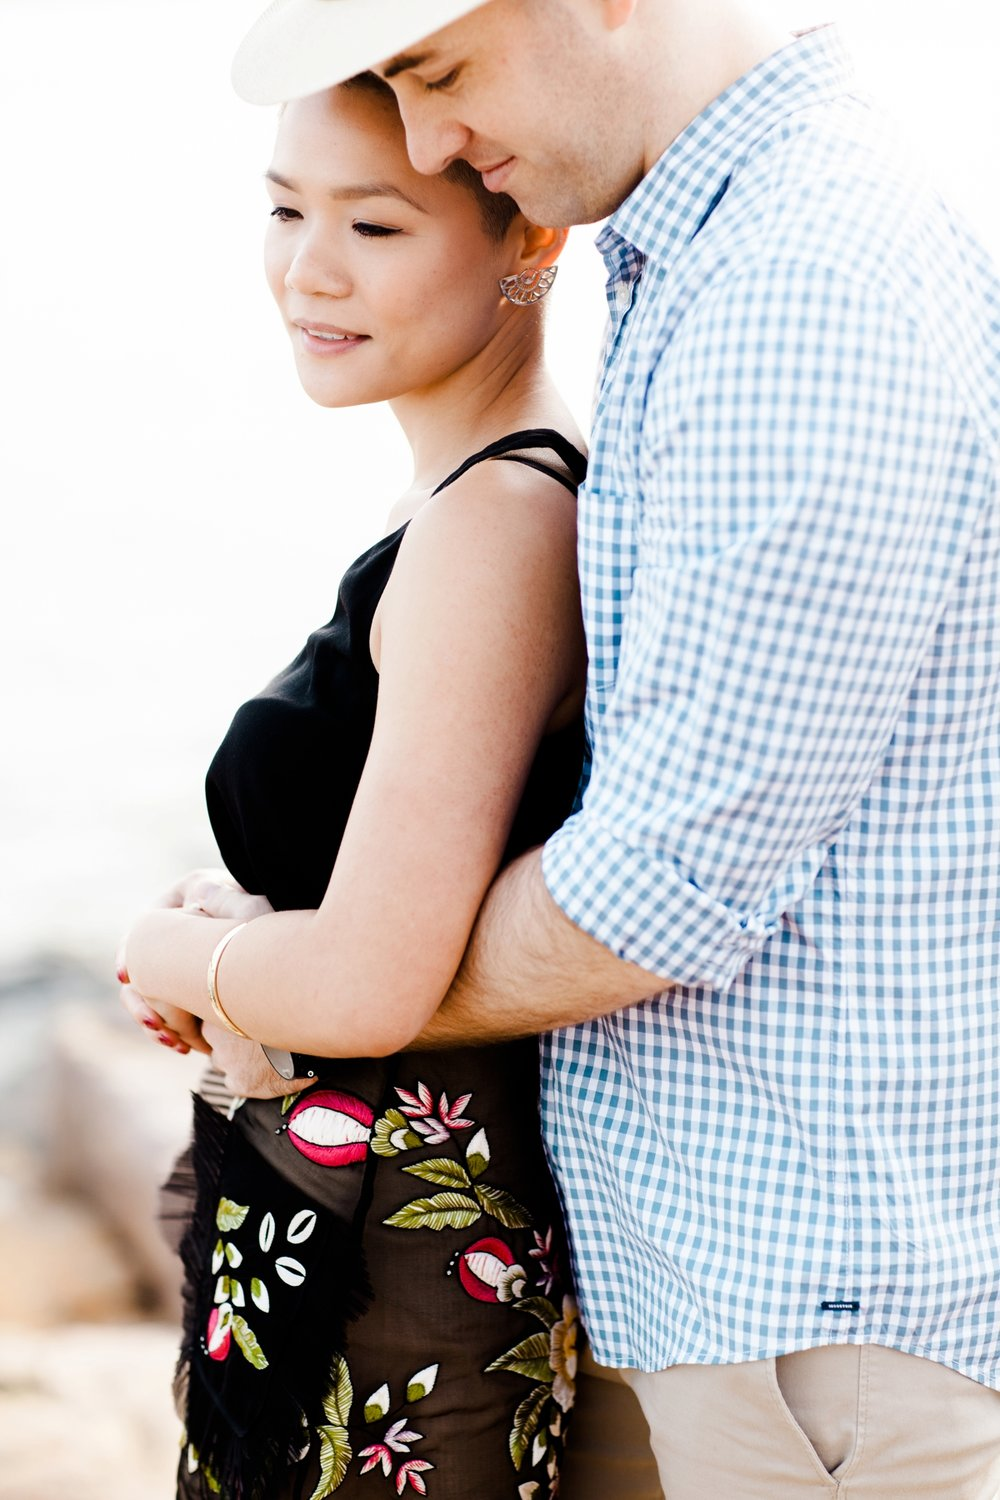 Couples session Pyrmont Photography by Mr Edwards Sydney_3484.jpg